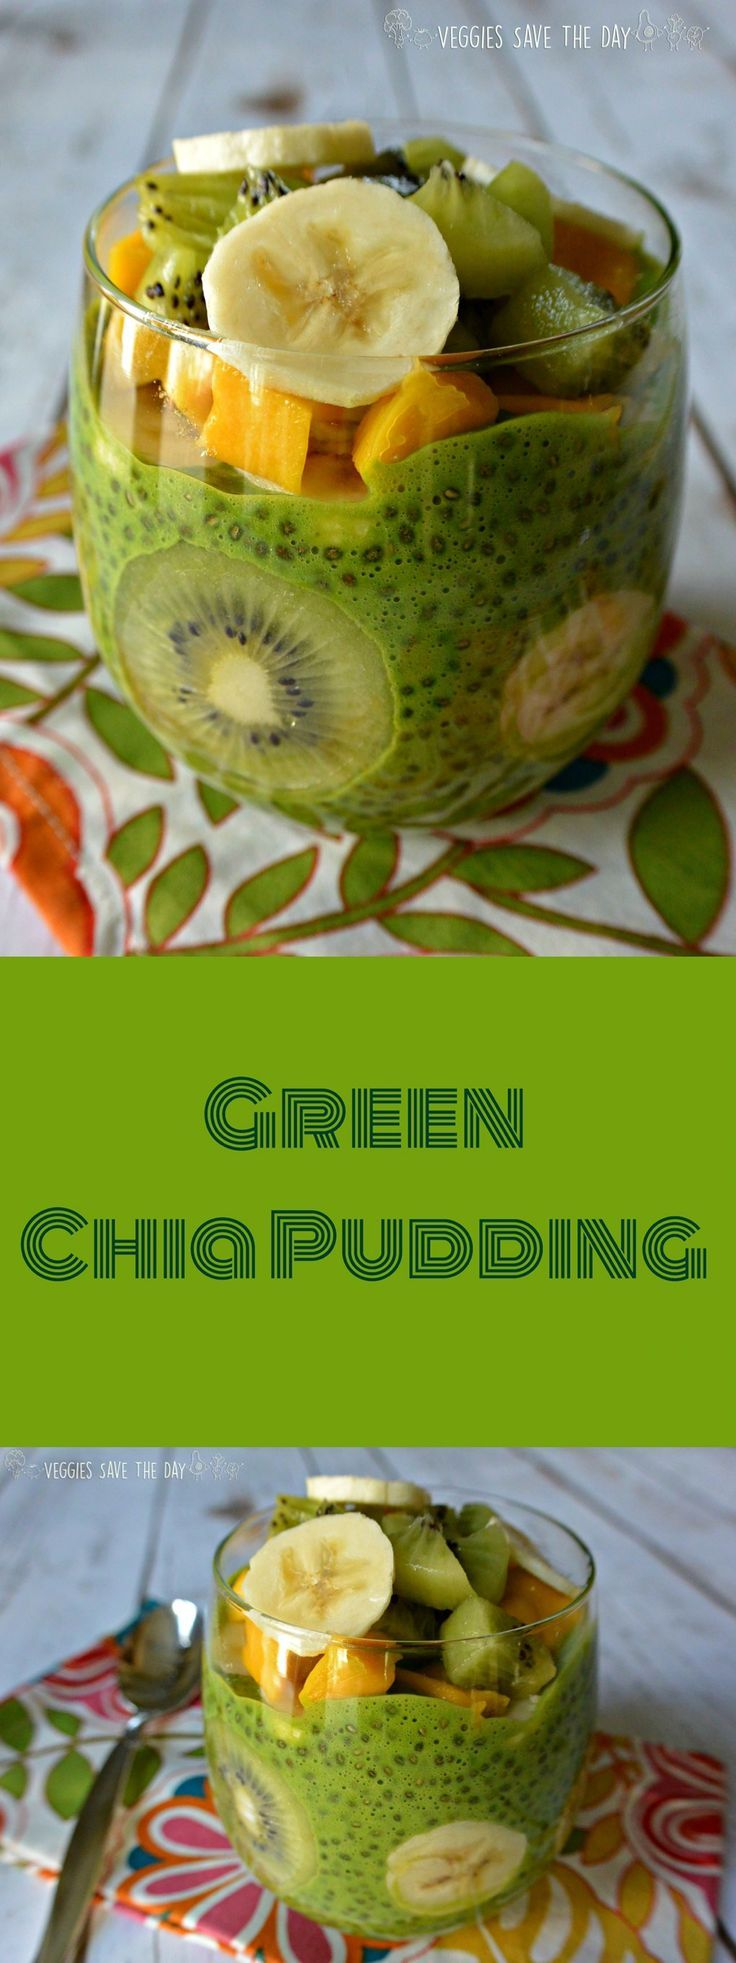 Green Chia Pudding is perfect for a nutritious breakfast, a satisfying snack, or a sugar-free dessert. It's easy to make with only a few ingredients. Click here to get the recipe http://www.veggiessav(Paleo Breakfast Chia)